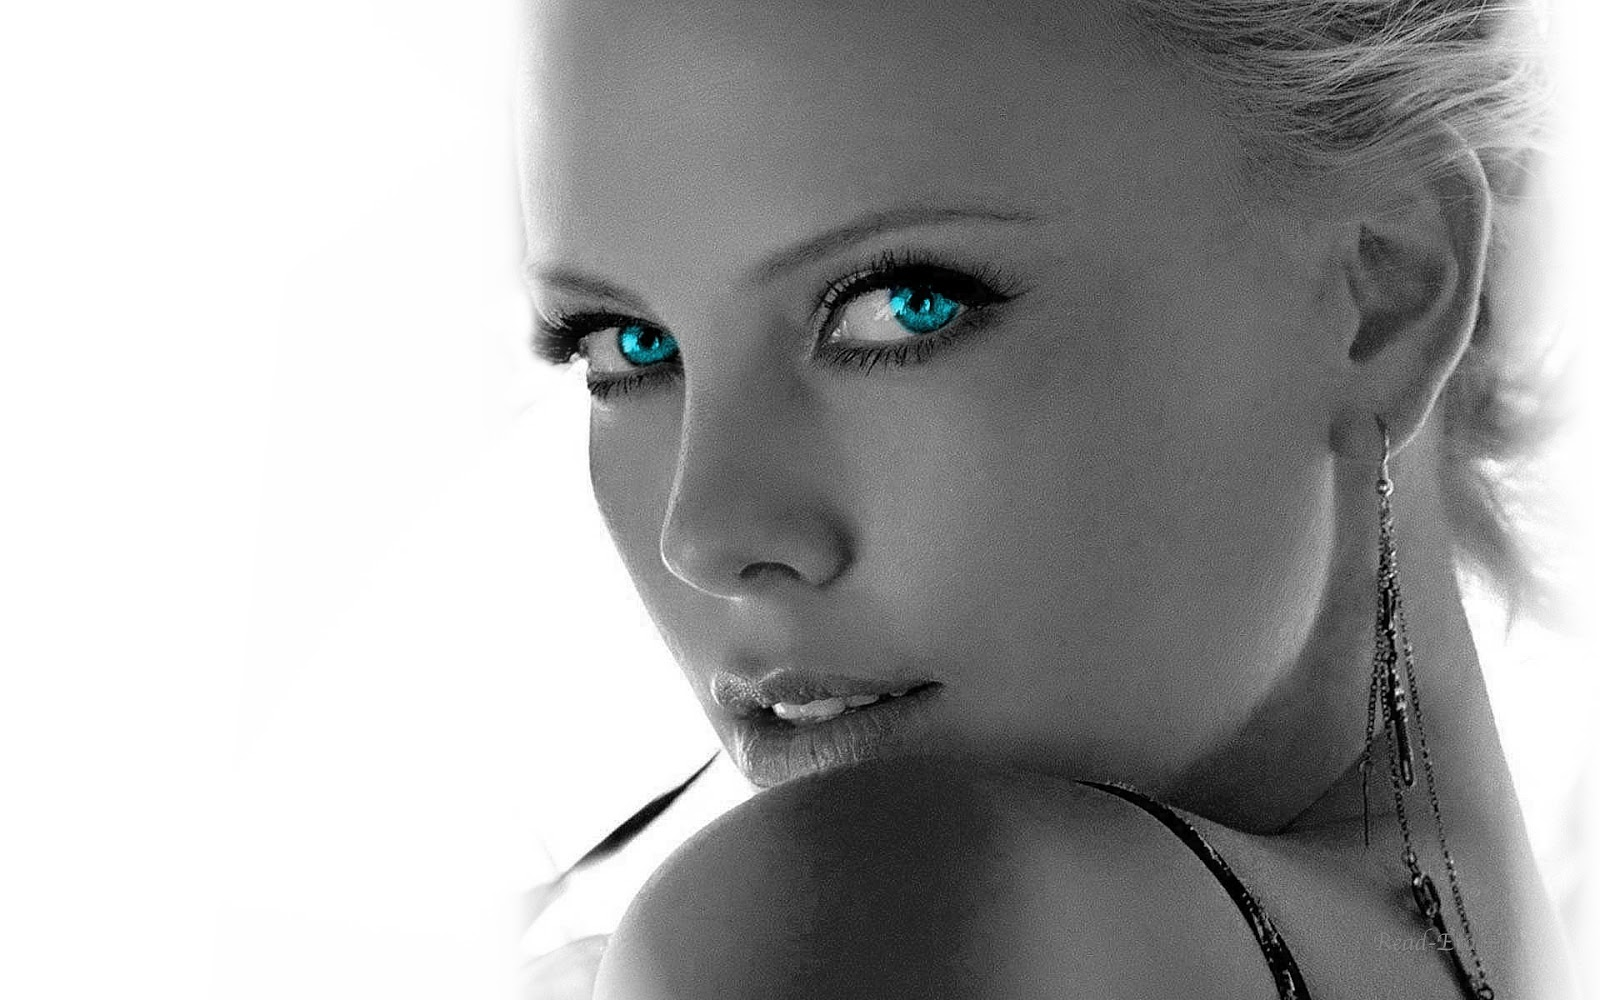 Beautiful Girls Blue Eyes Hd Wallpapers 2013 Latest Hd Wallpapers 1600x1000